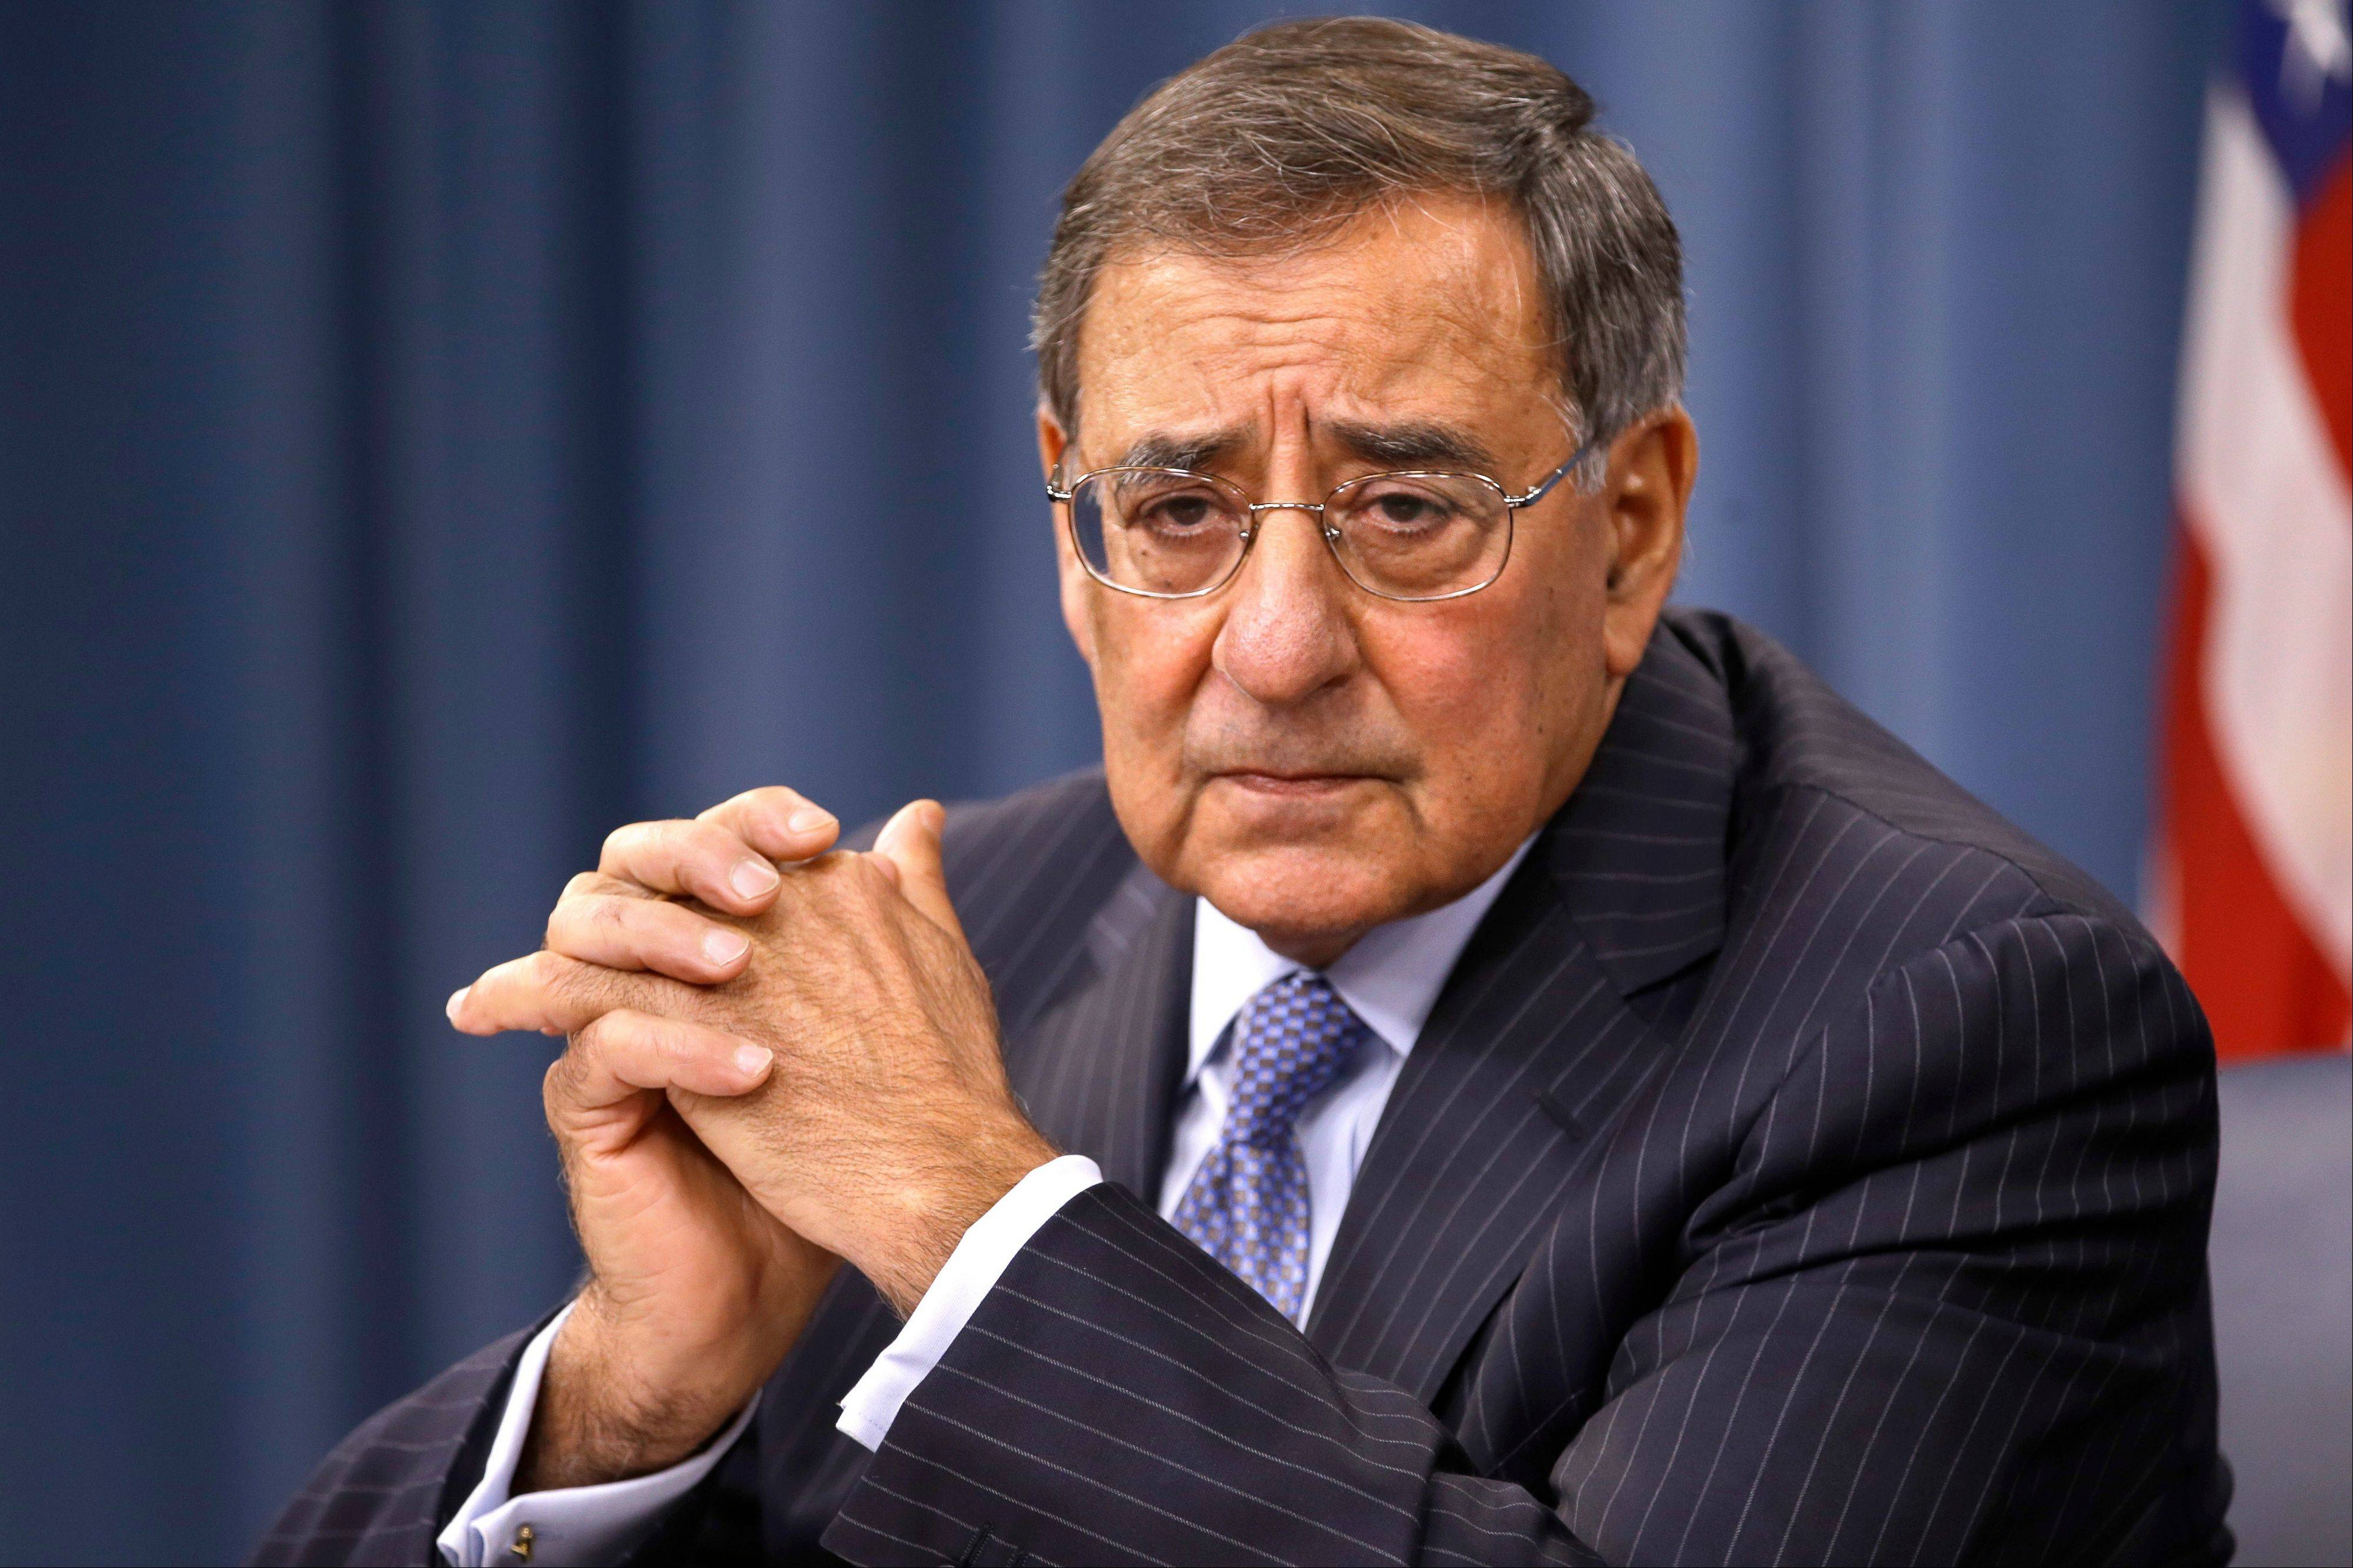 U.S. Defense Secretary Leon Panetta, speaks at a news conference with U.S. Chairman of the Joint Chiefs of Staff Gen. Martin Dempsey, not pictured, at the Pentagon, in Washington.